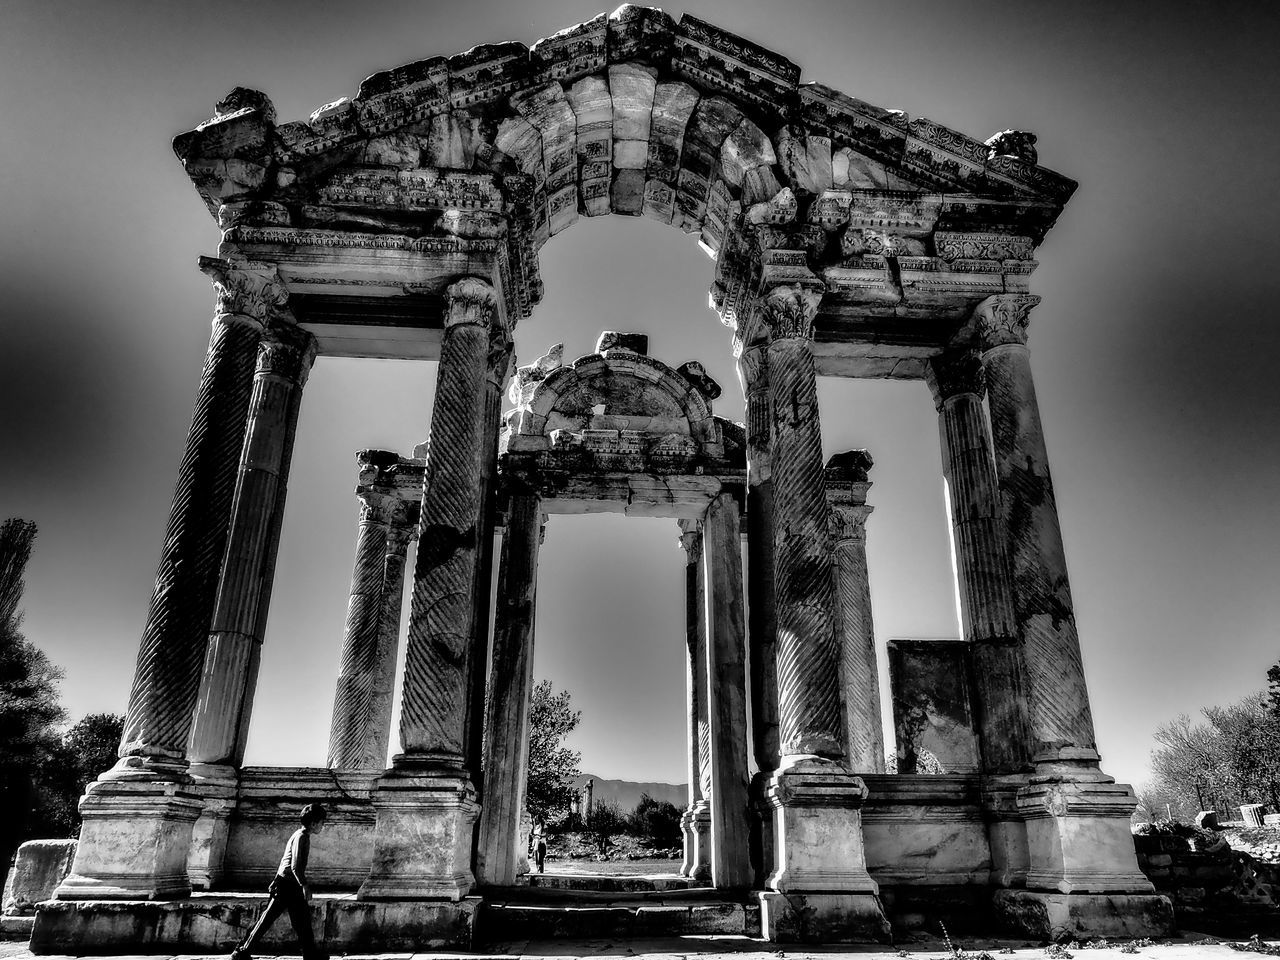 history, ancient, old ruin, the past, architectural column, architecture, built structure, ancient civilization, sky, low angle view, travel destinations, tourism, archaeology, weathered, damaged, bad condition, outdoors, travel, abandoned, no people, spirituality, building exterior, day